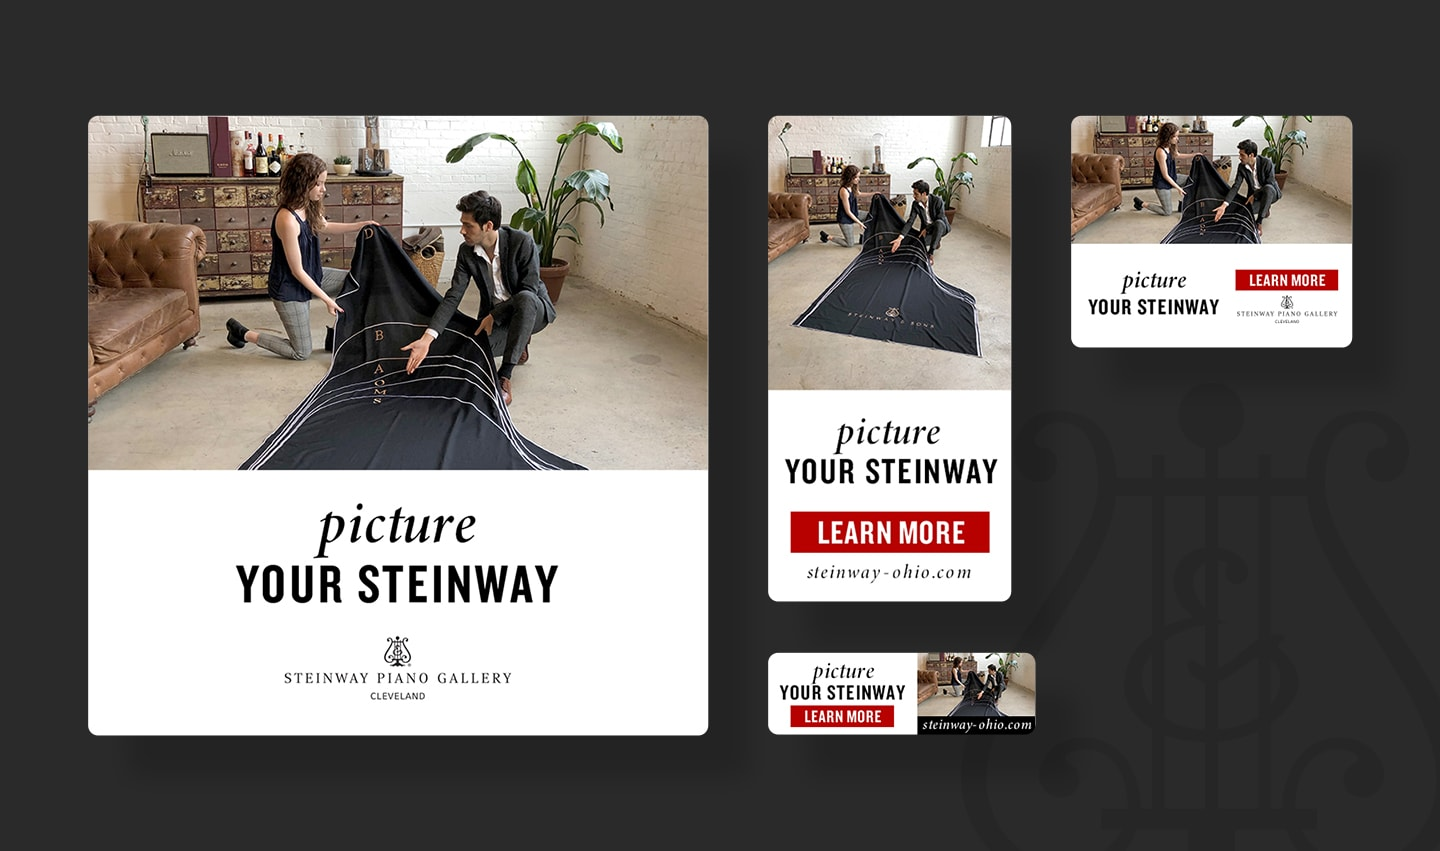 steinway and sons google display ads